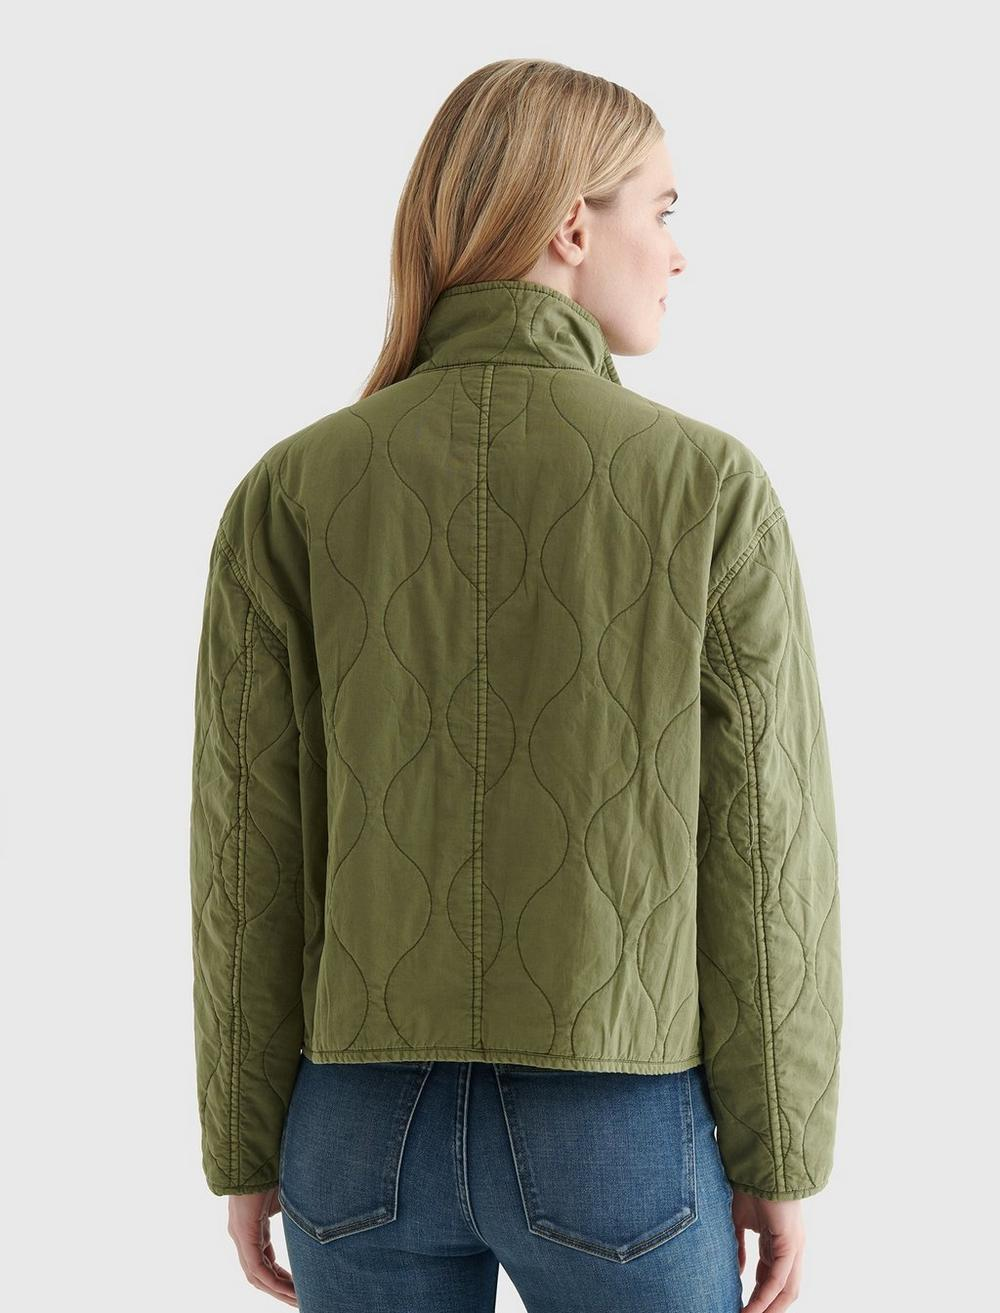 CARRY ON QUILTED JACKET, image 5